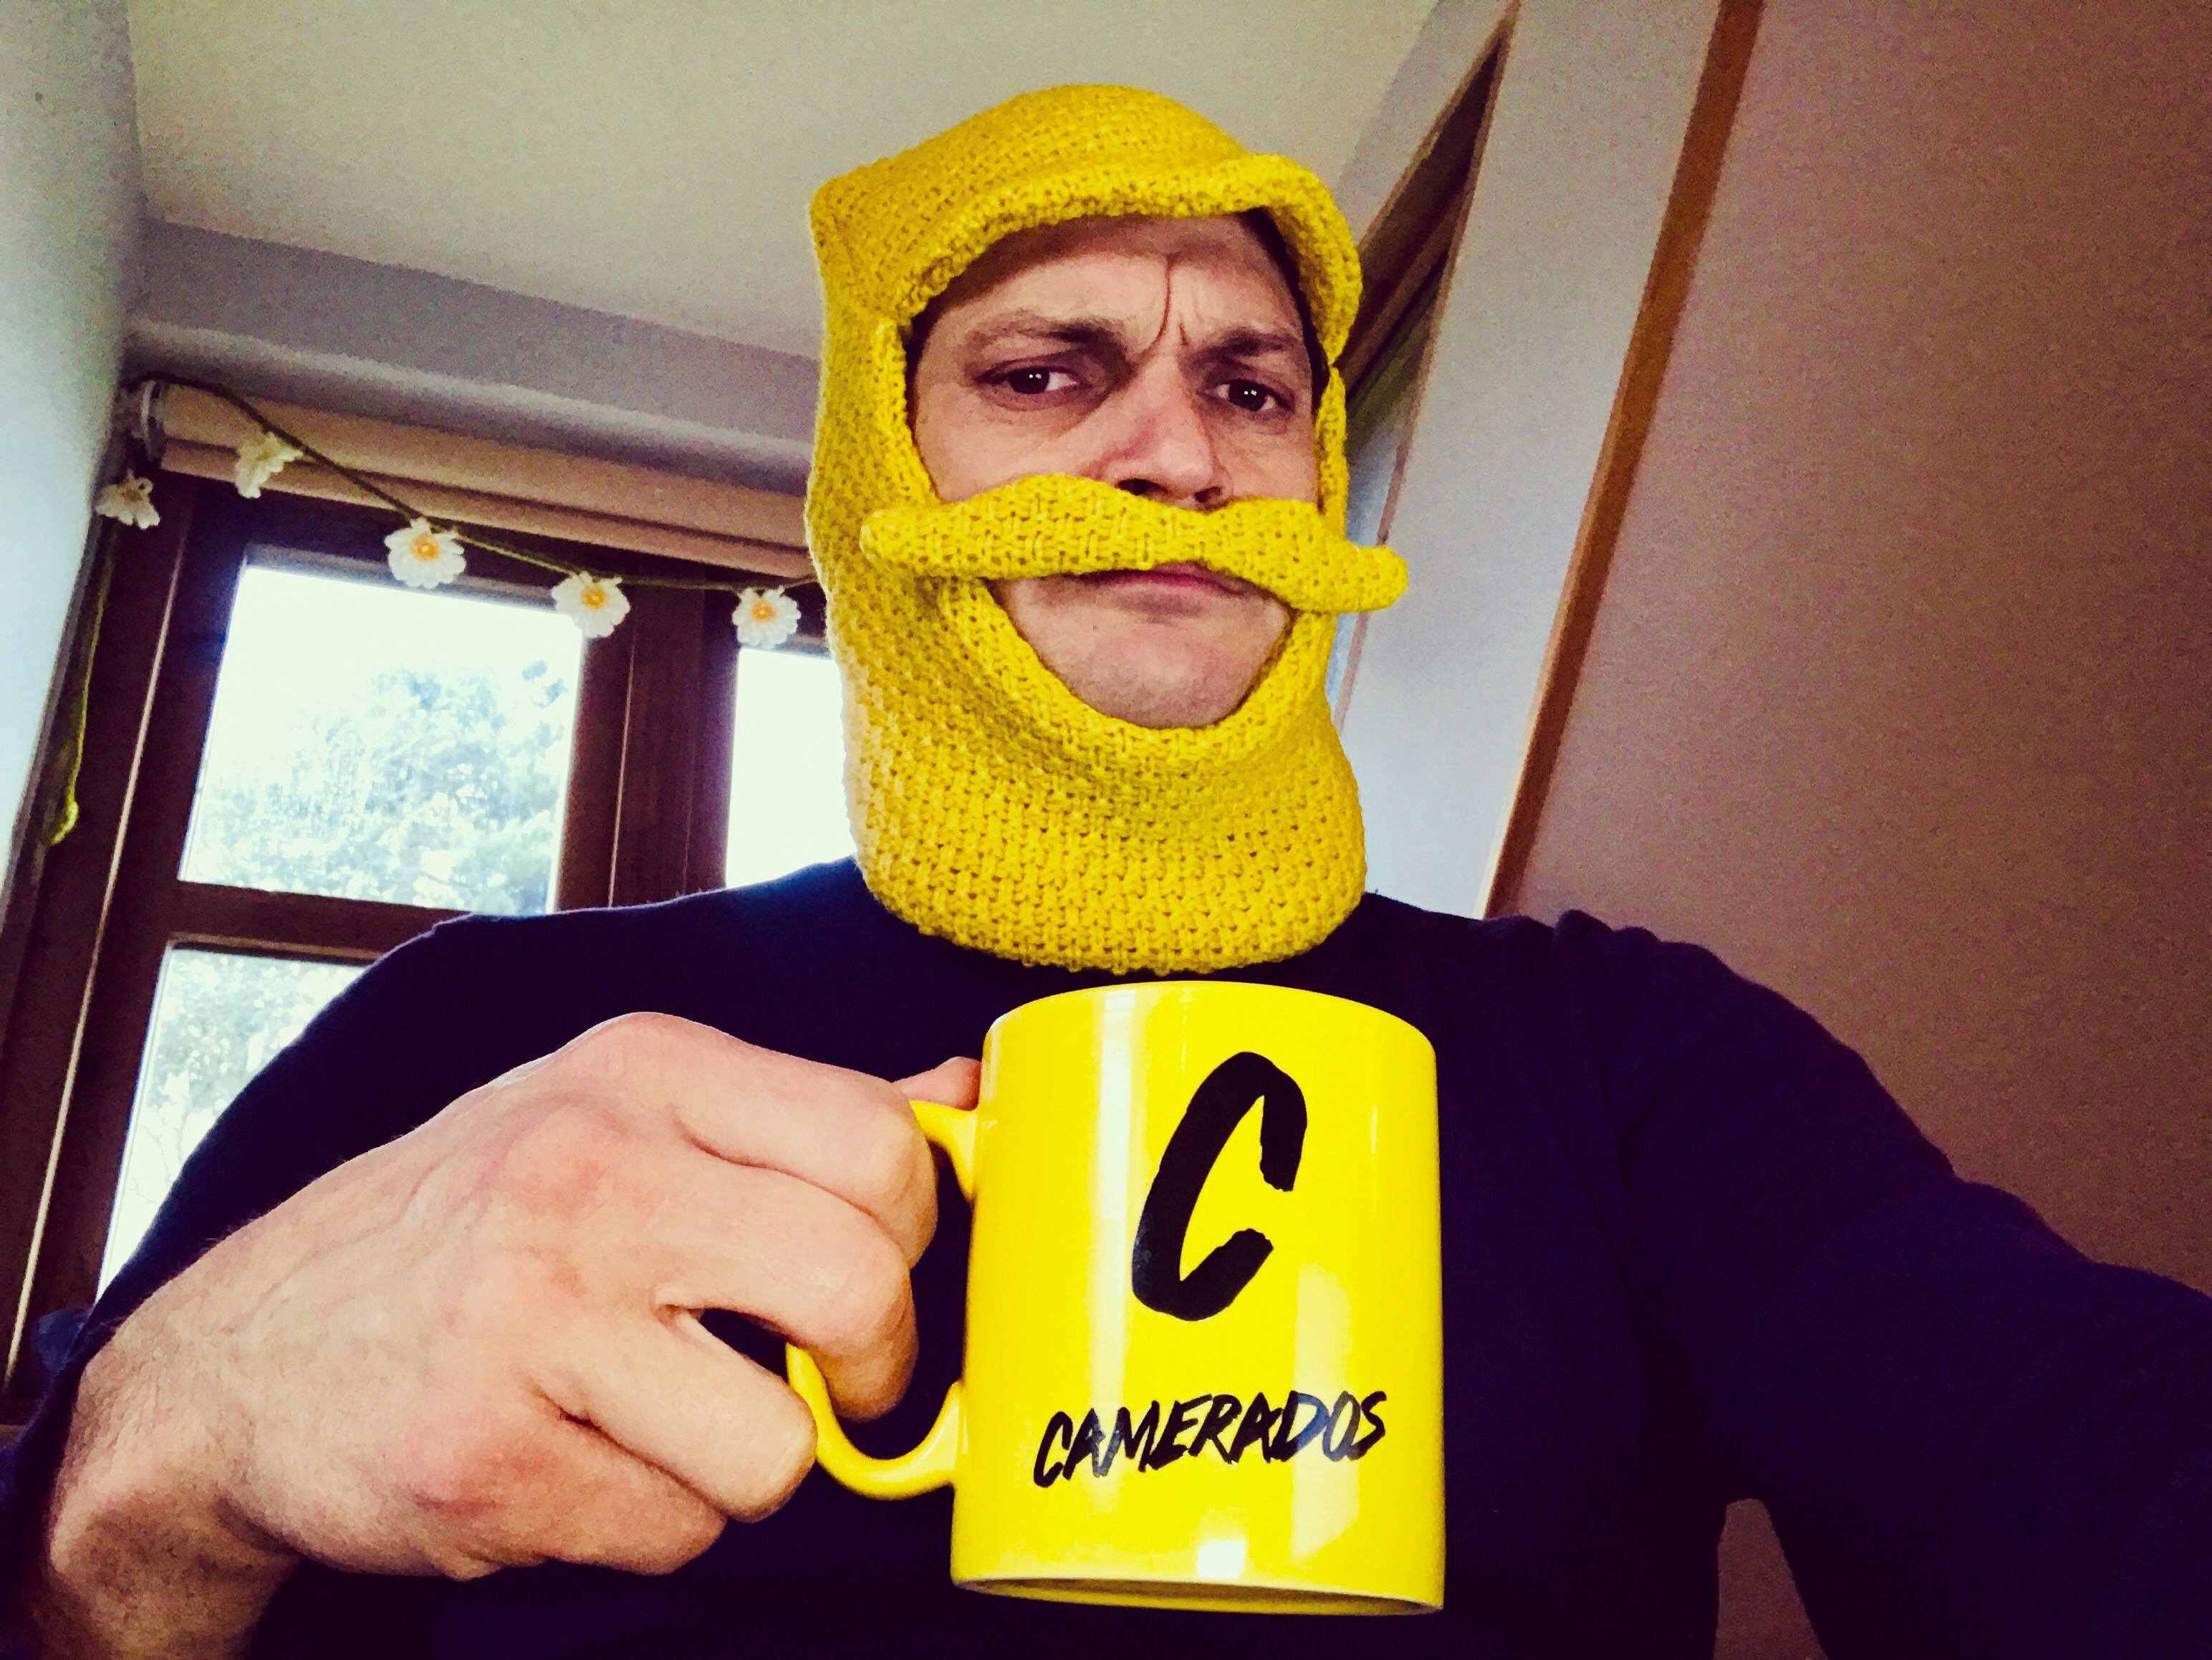 A man wearing a yellow hat that has a moustache holds up a yellow mug that has 'Camerados' on it.